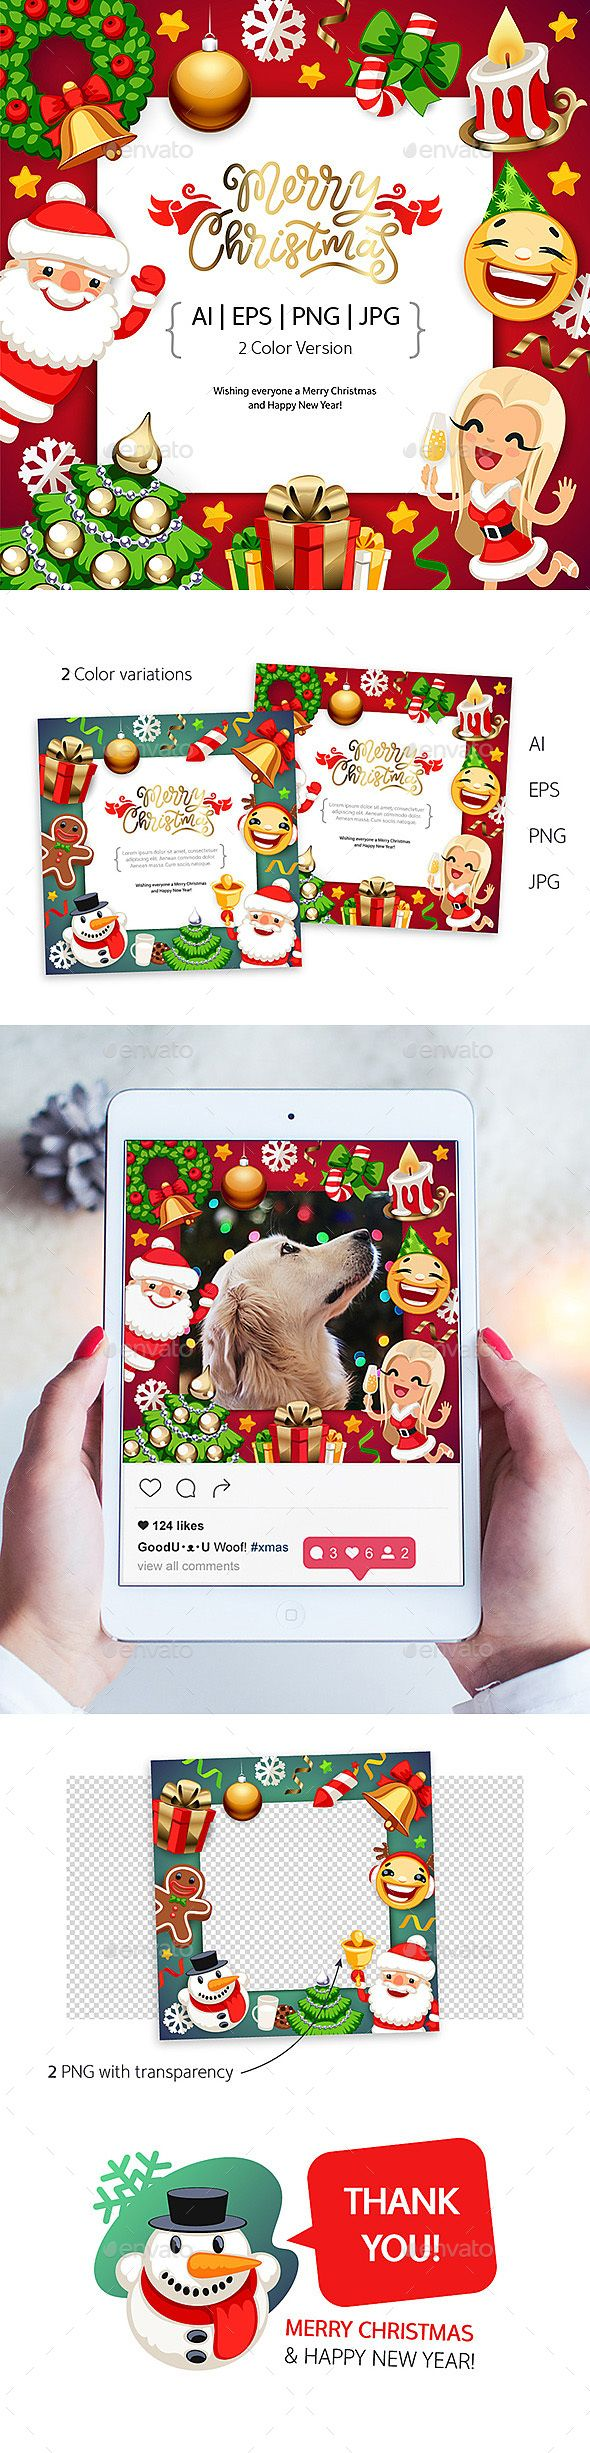 Merry Christmas Background with Copy Space Merry